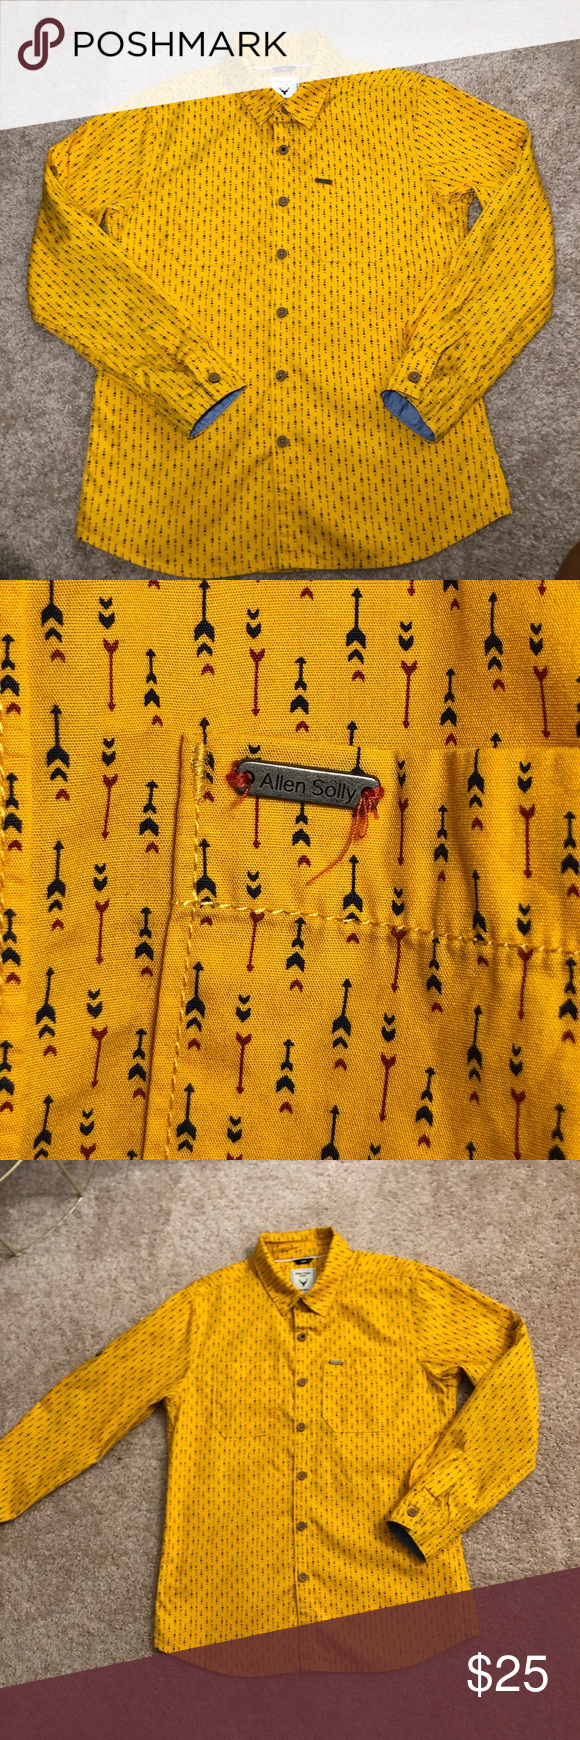 Allen Solly Jr Slim Fit Youth Collard Shirt Allen Solly Junior Collard Button Down Shirt For A Big Boy Youth Be Golden Yellow Color Slim Fit Arrow Print